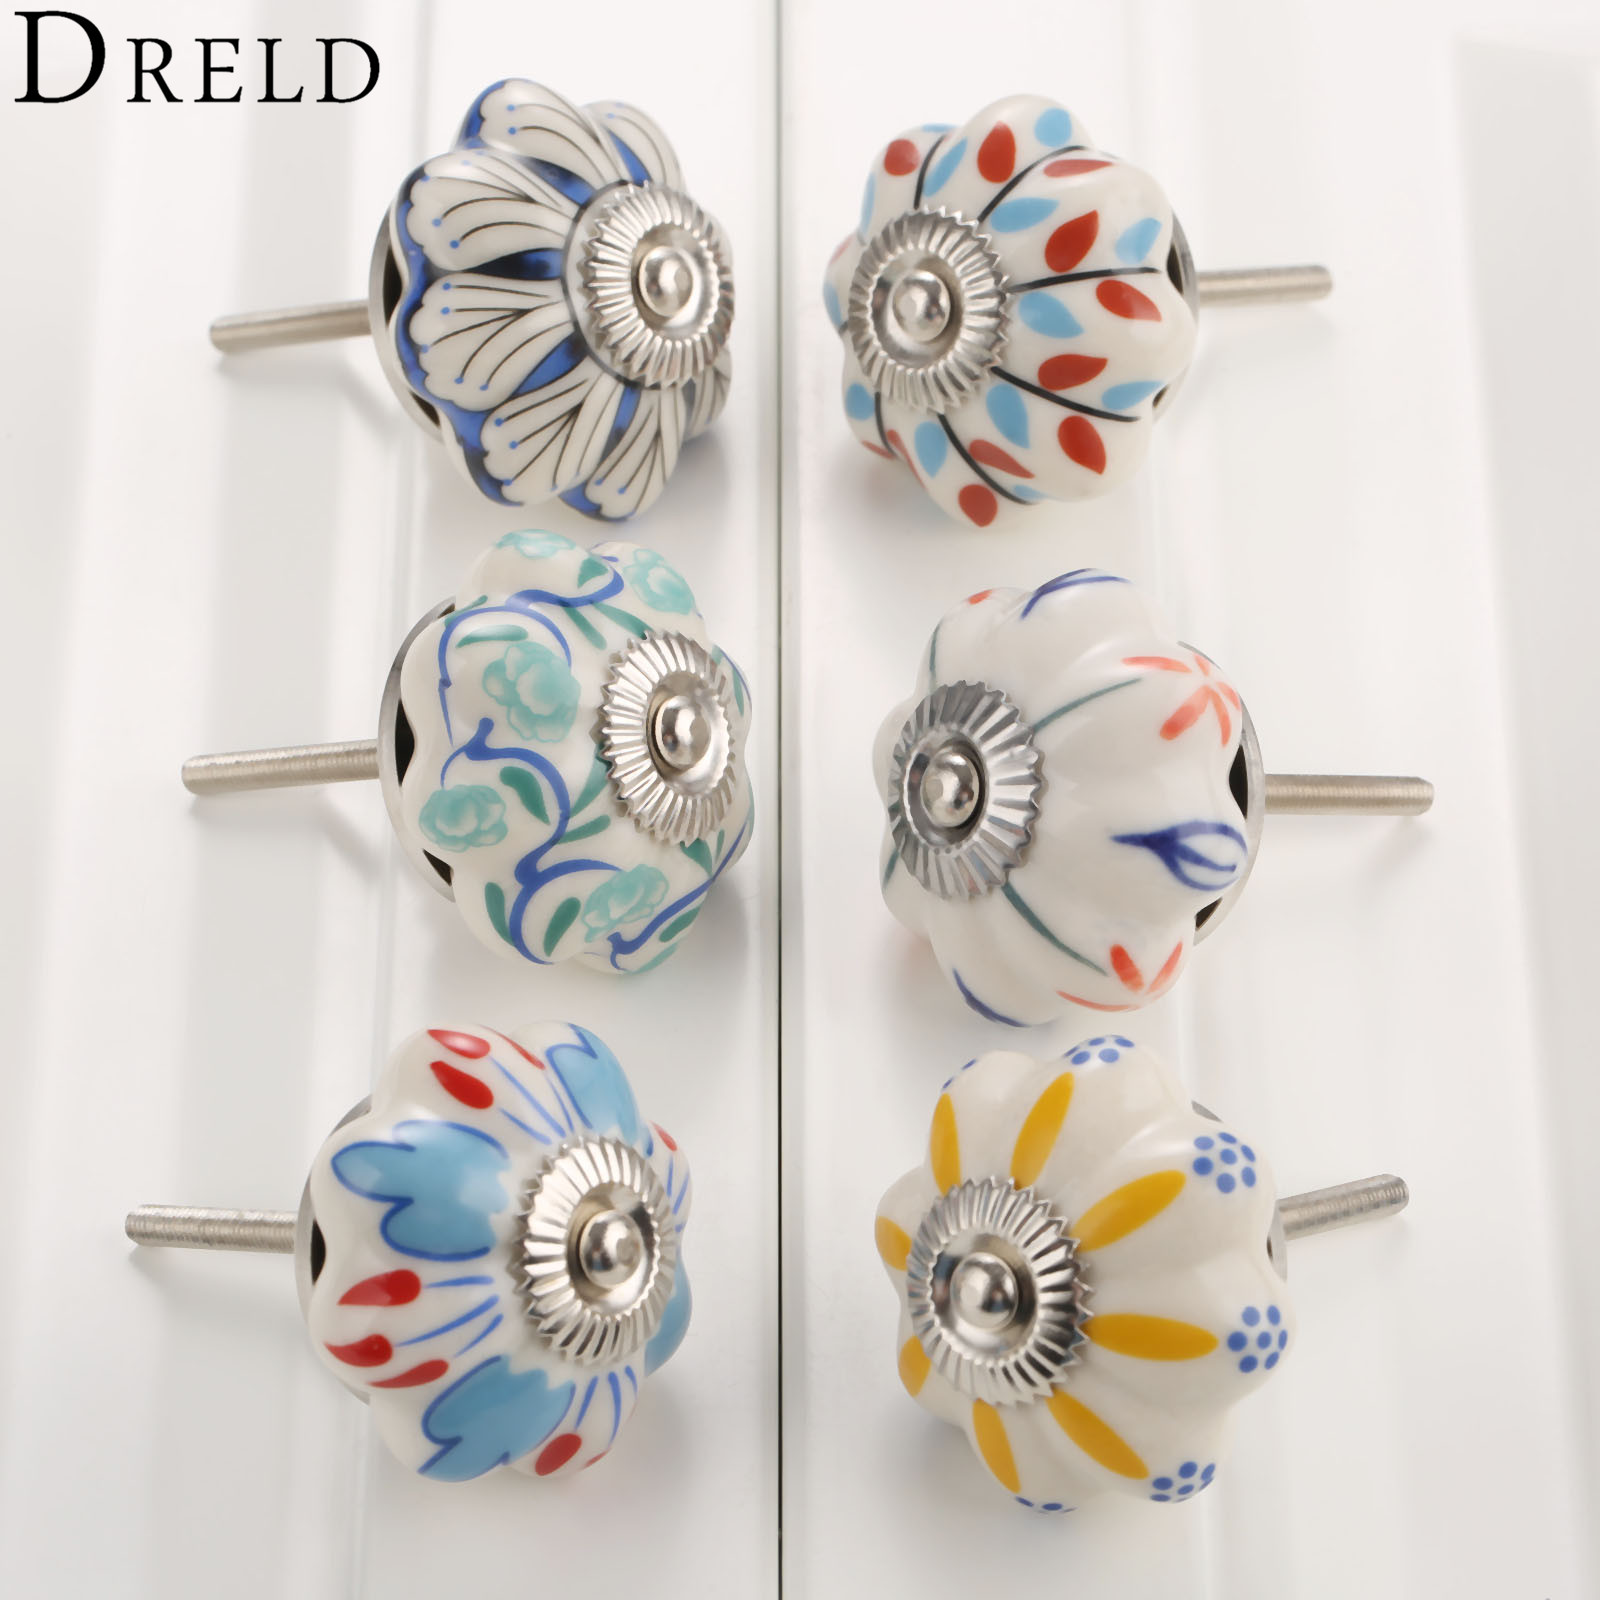 DRELD 40mm Furniture Handle Ceramic Drawer Cabinet Knobs and Handles Knobs Door Cupboard Kitchen Pull Handles Furniture Hardware 8 color vintage retro ceramics drawer knob cabinet cupboard door pull handle furniture decor kitchen furniture knobs and handles